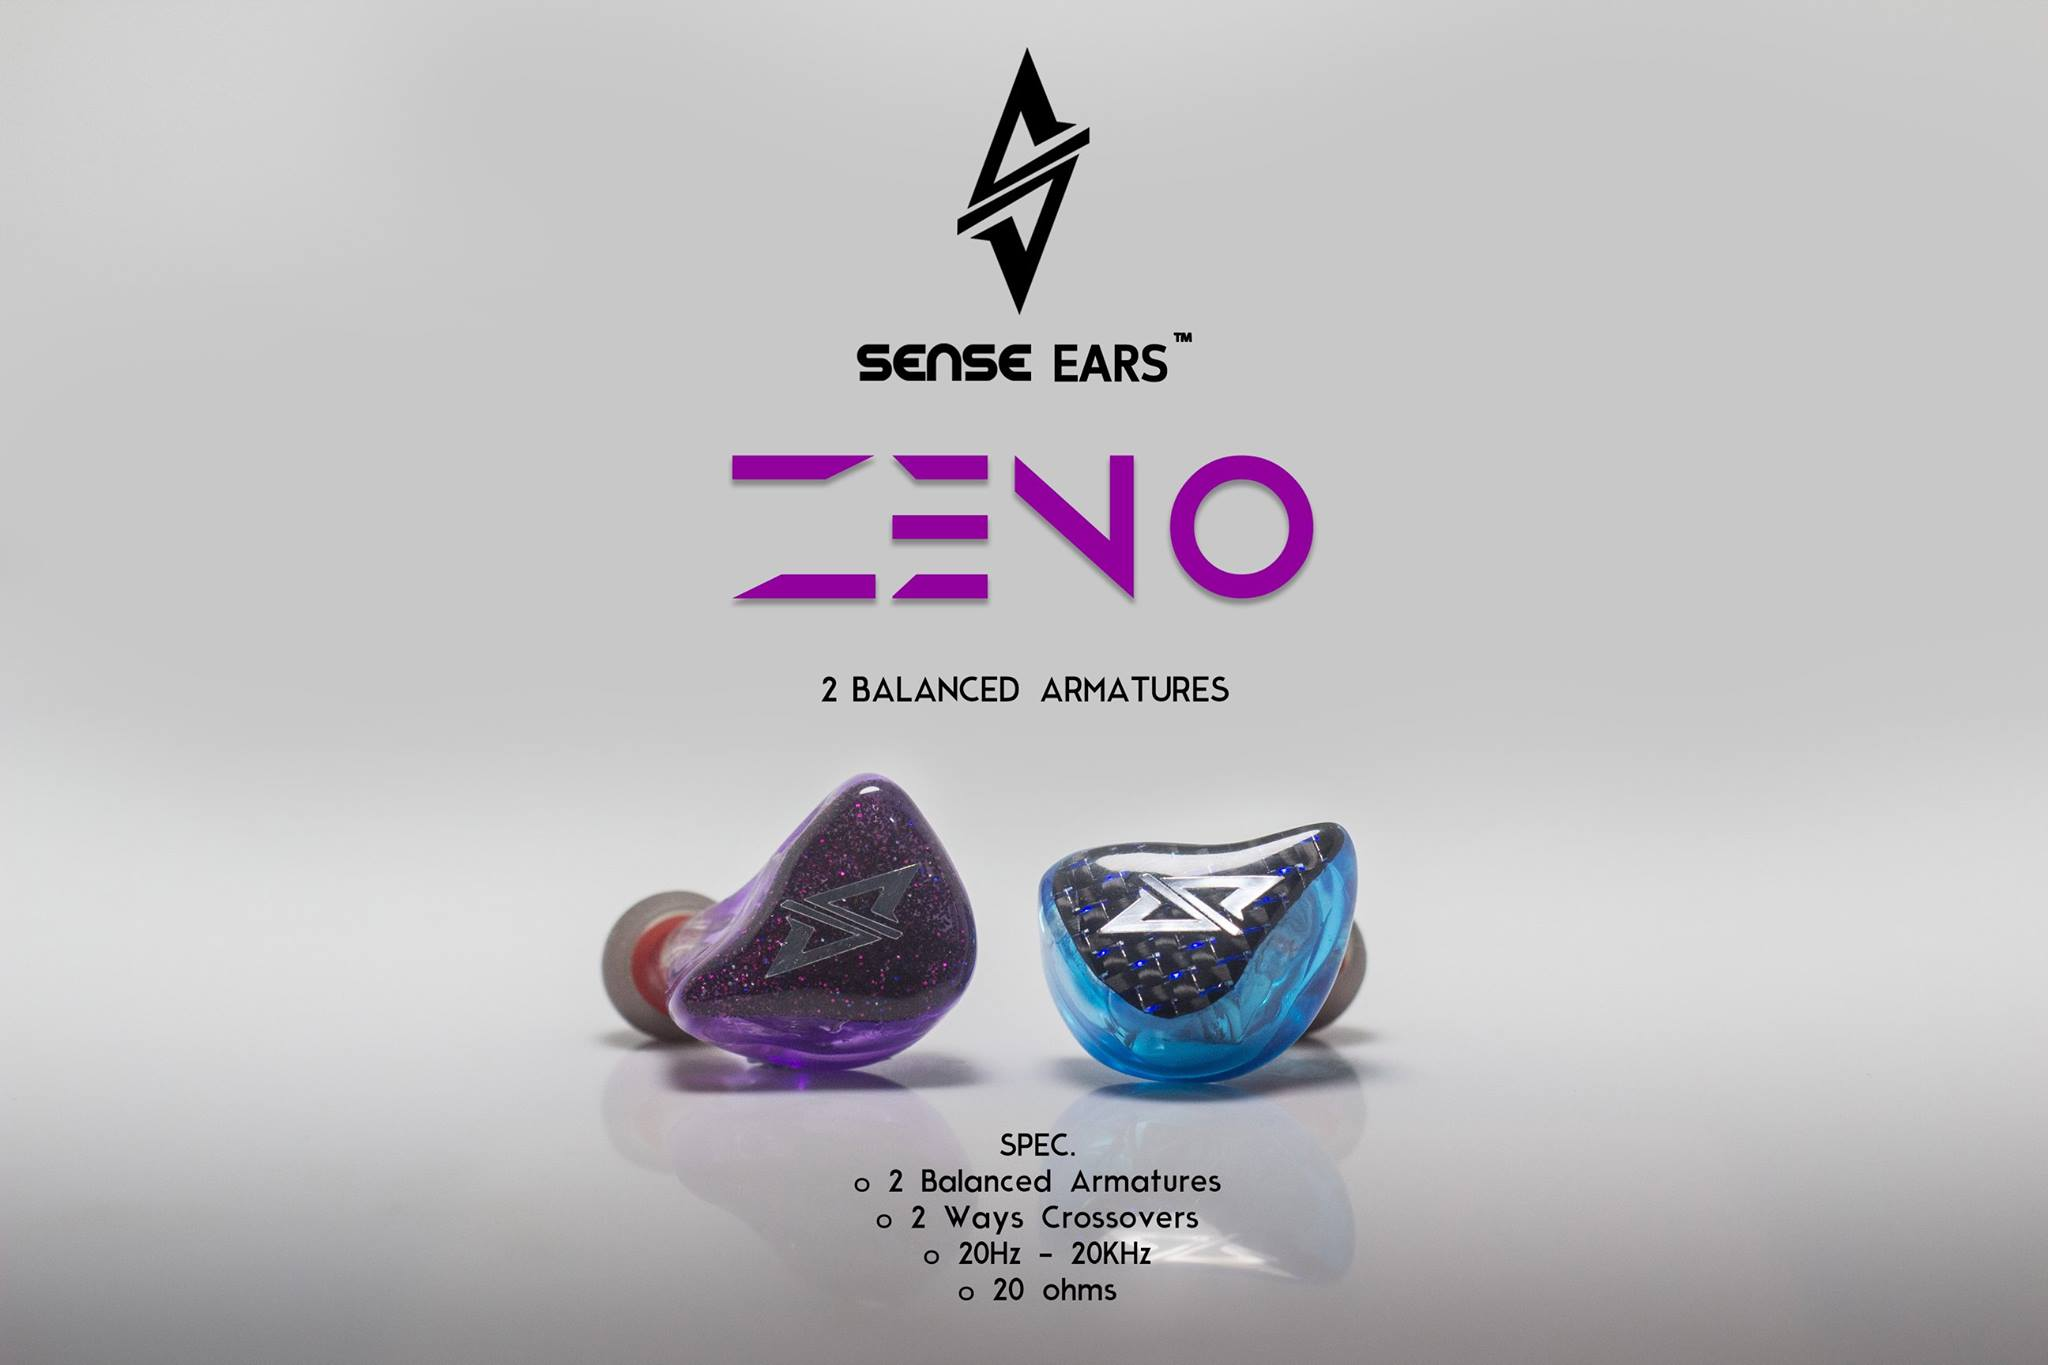 หูฟัง Sense Ears ZENO (ciem 2 Balanced Armature)